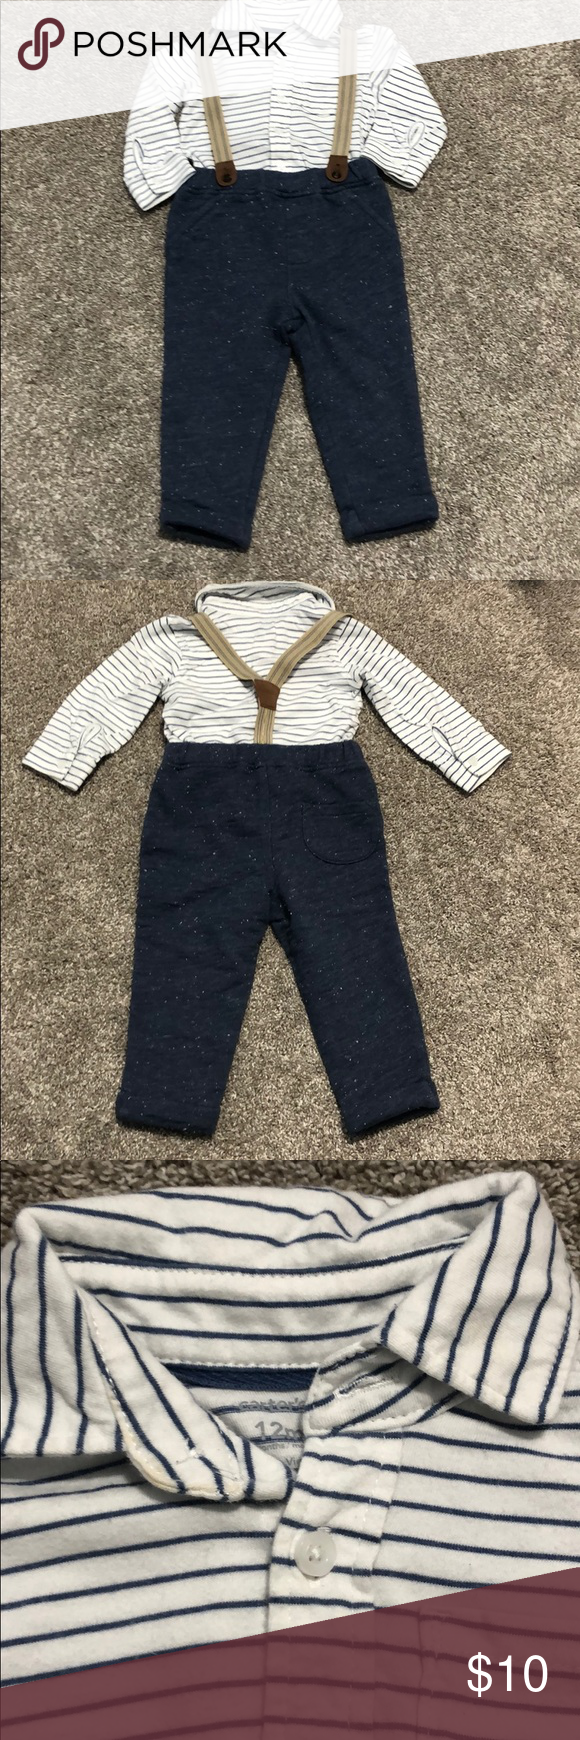 Spotted while shopping on Poshmark Carters set